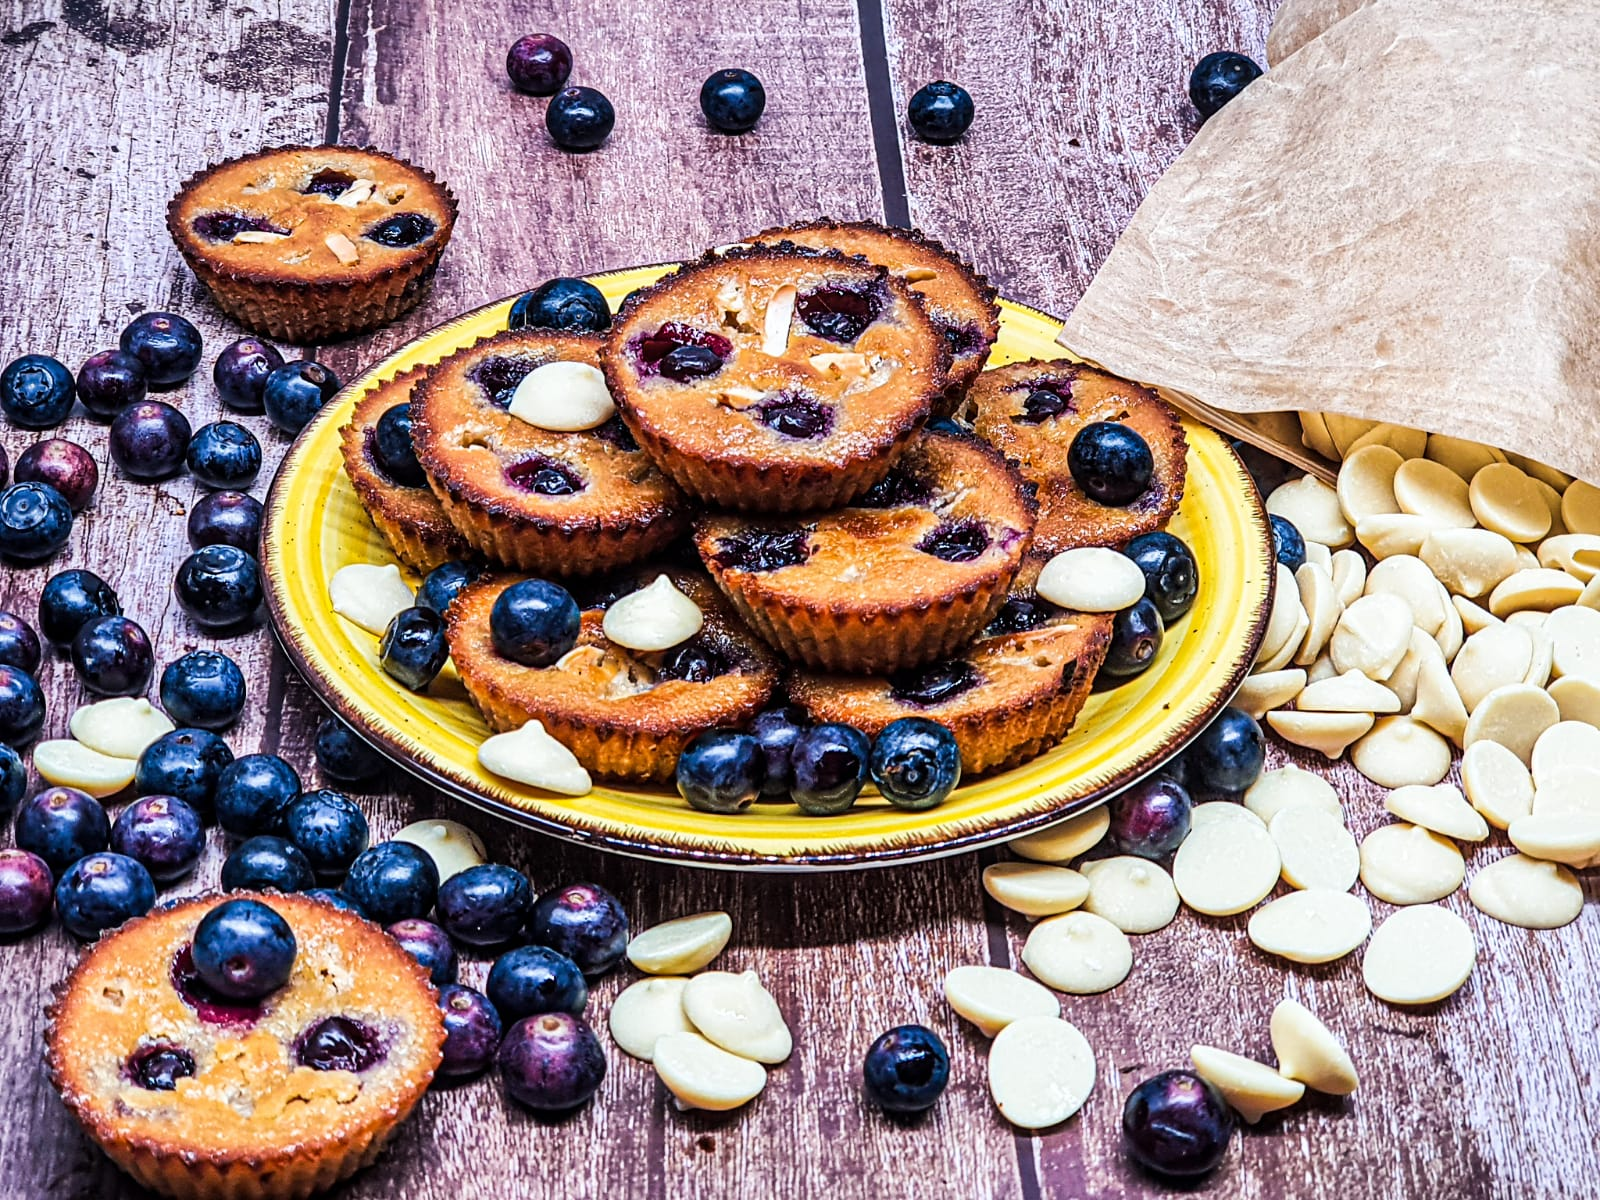 Vegan Recipes Cacao-Shamaness Vegan Financiers with Blueberries and Vegan White Chocolate Chips